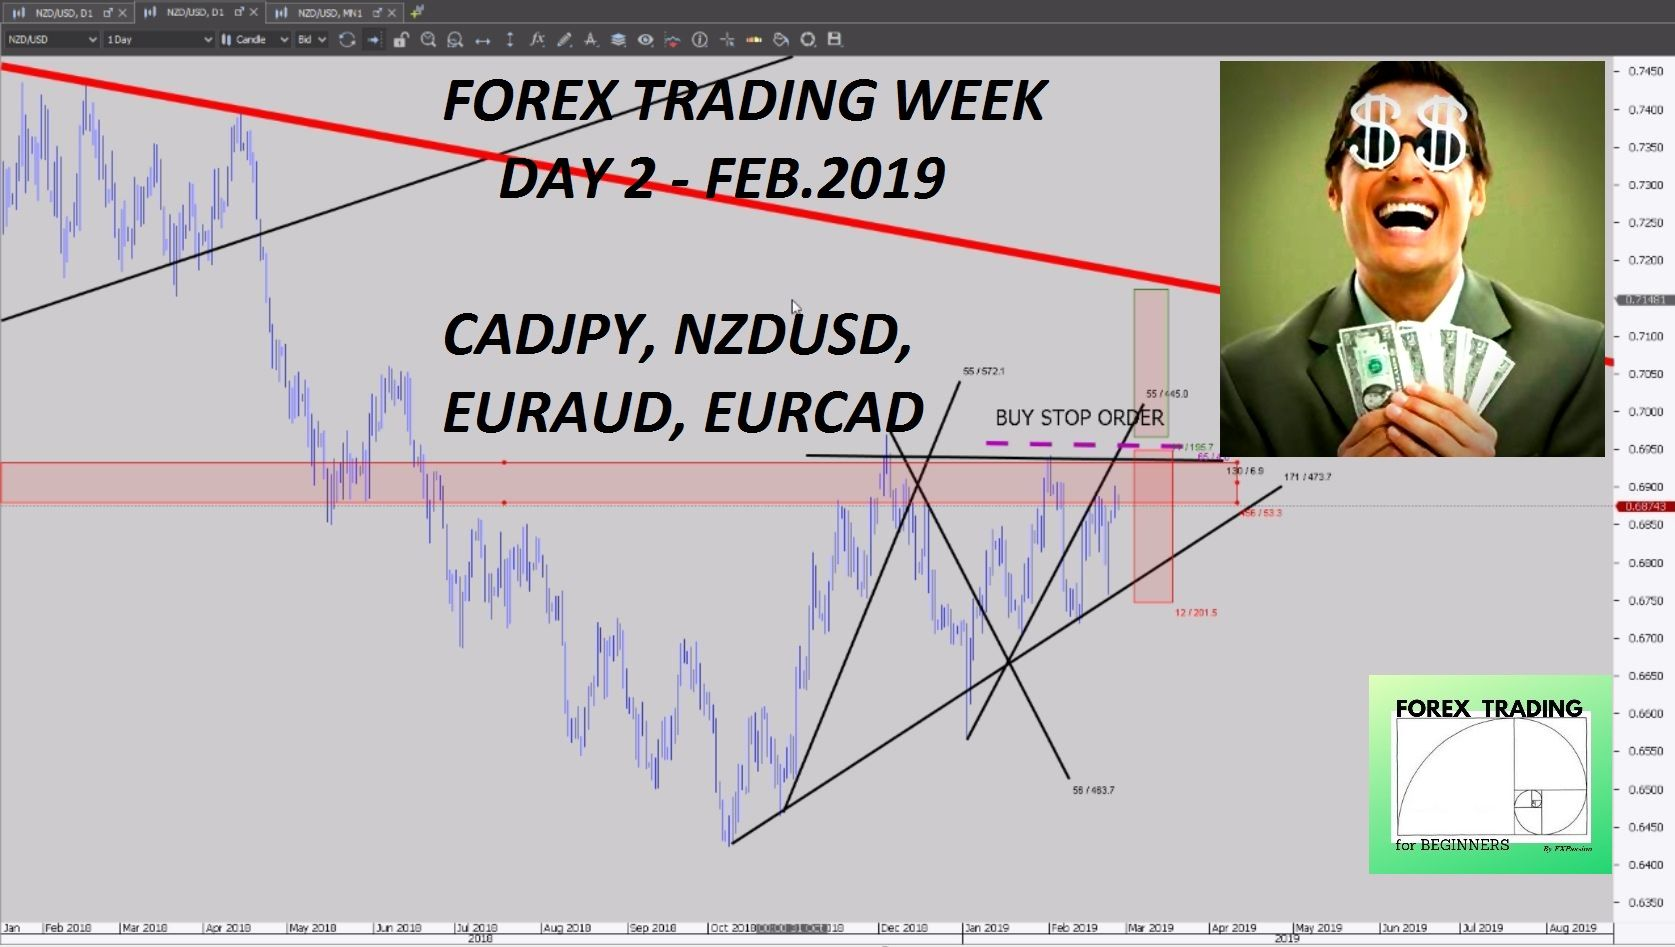 Forex trading for beginners forex trading week day 2